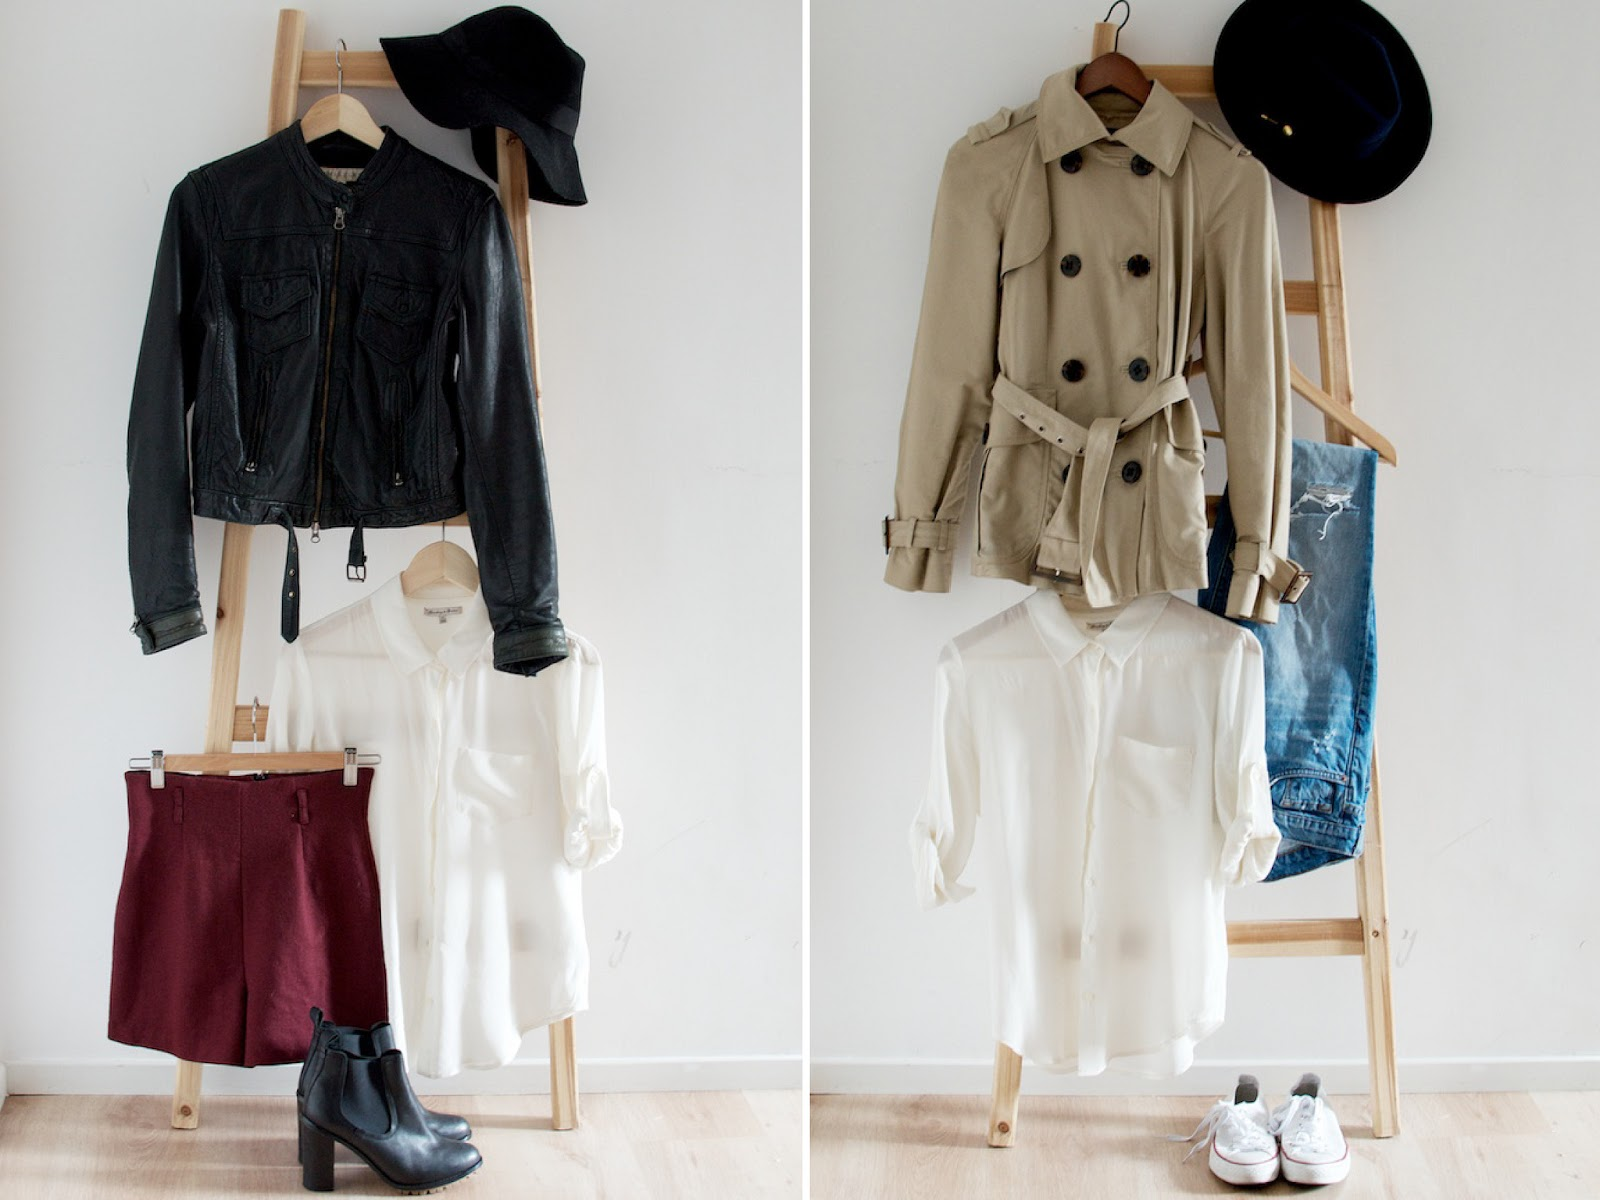 Fashion | Money Saving Tips for Those Times When You Need an Entire New Wardrobe